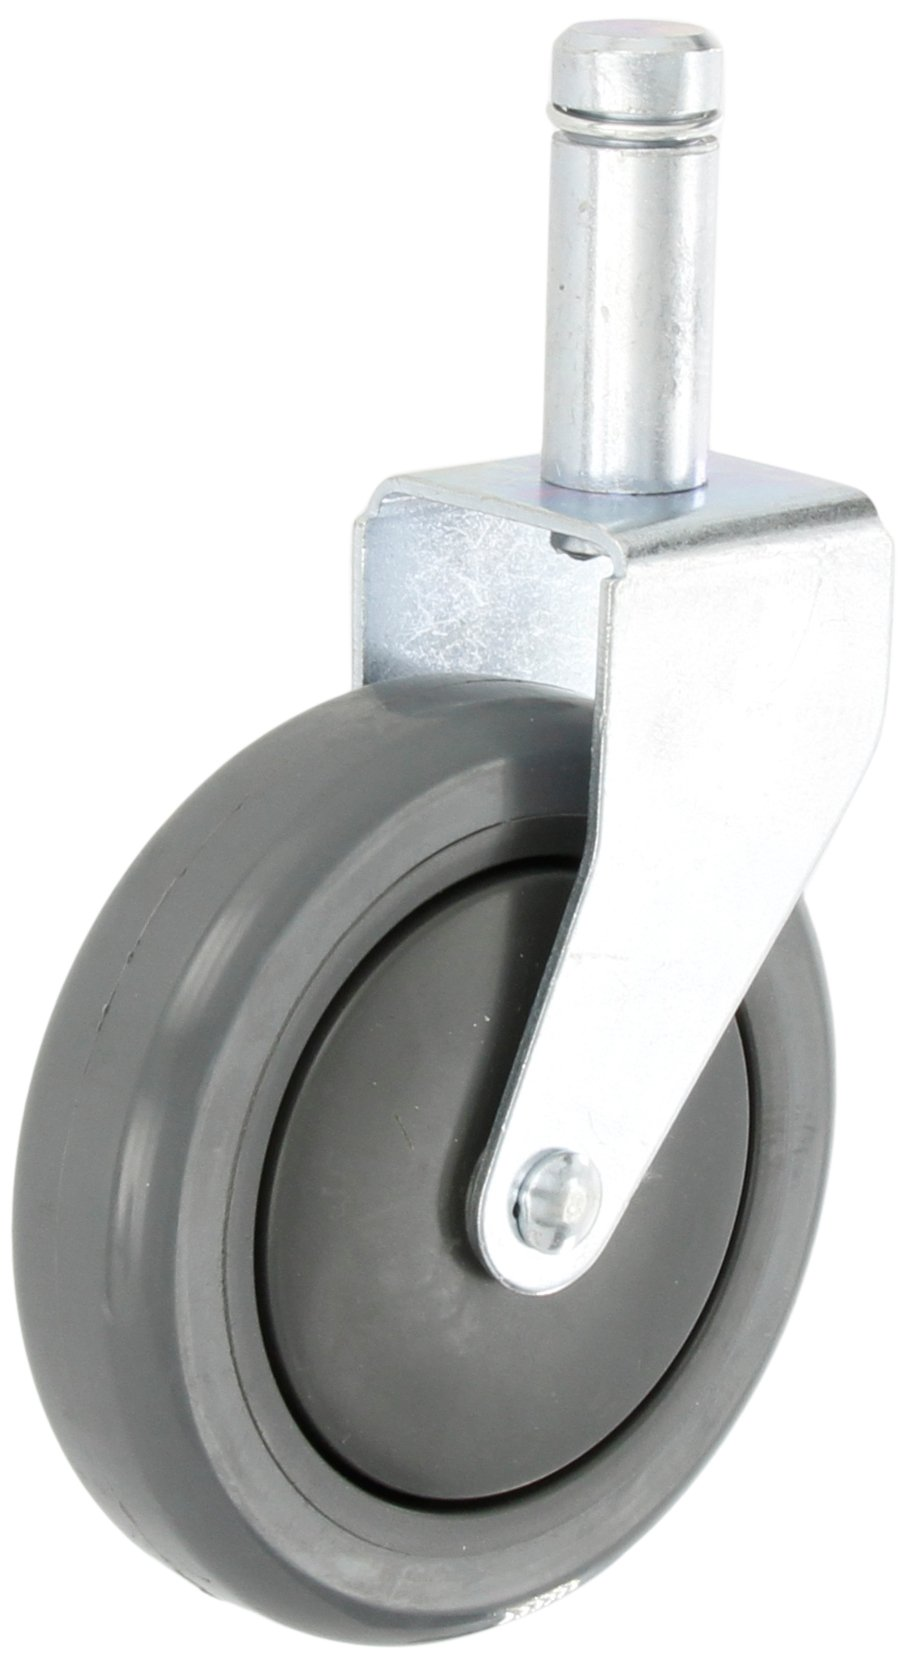 Quantum Storage Systems WR-RG 1-1/4'' Diameter Polyurethane Wheel One Rigid Stem Caster, 300 lbs Capacity